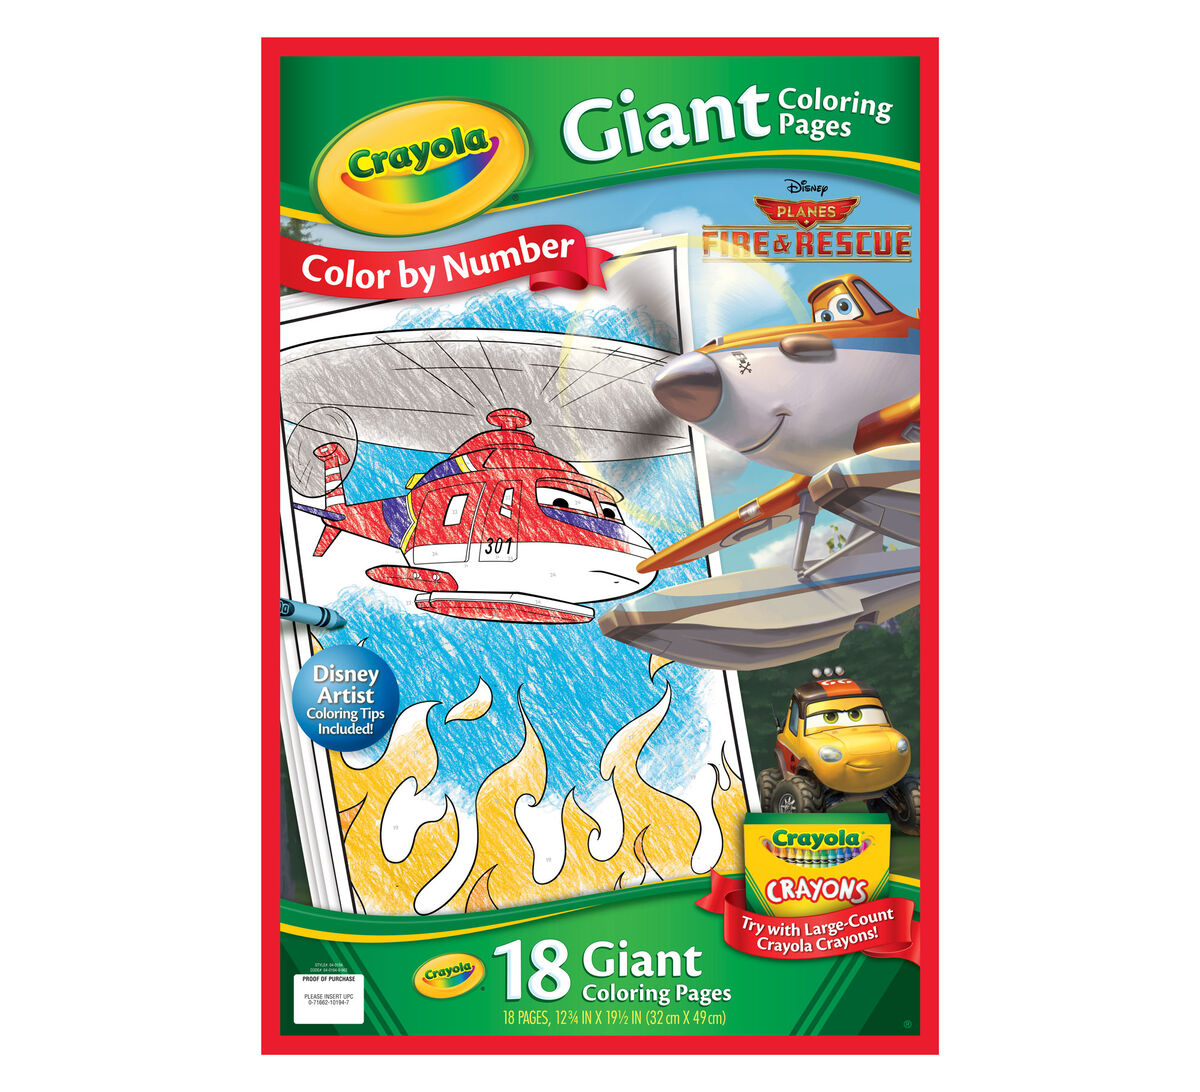 giant coloring pages disney planes fire rescue